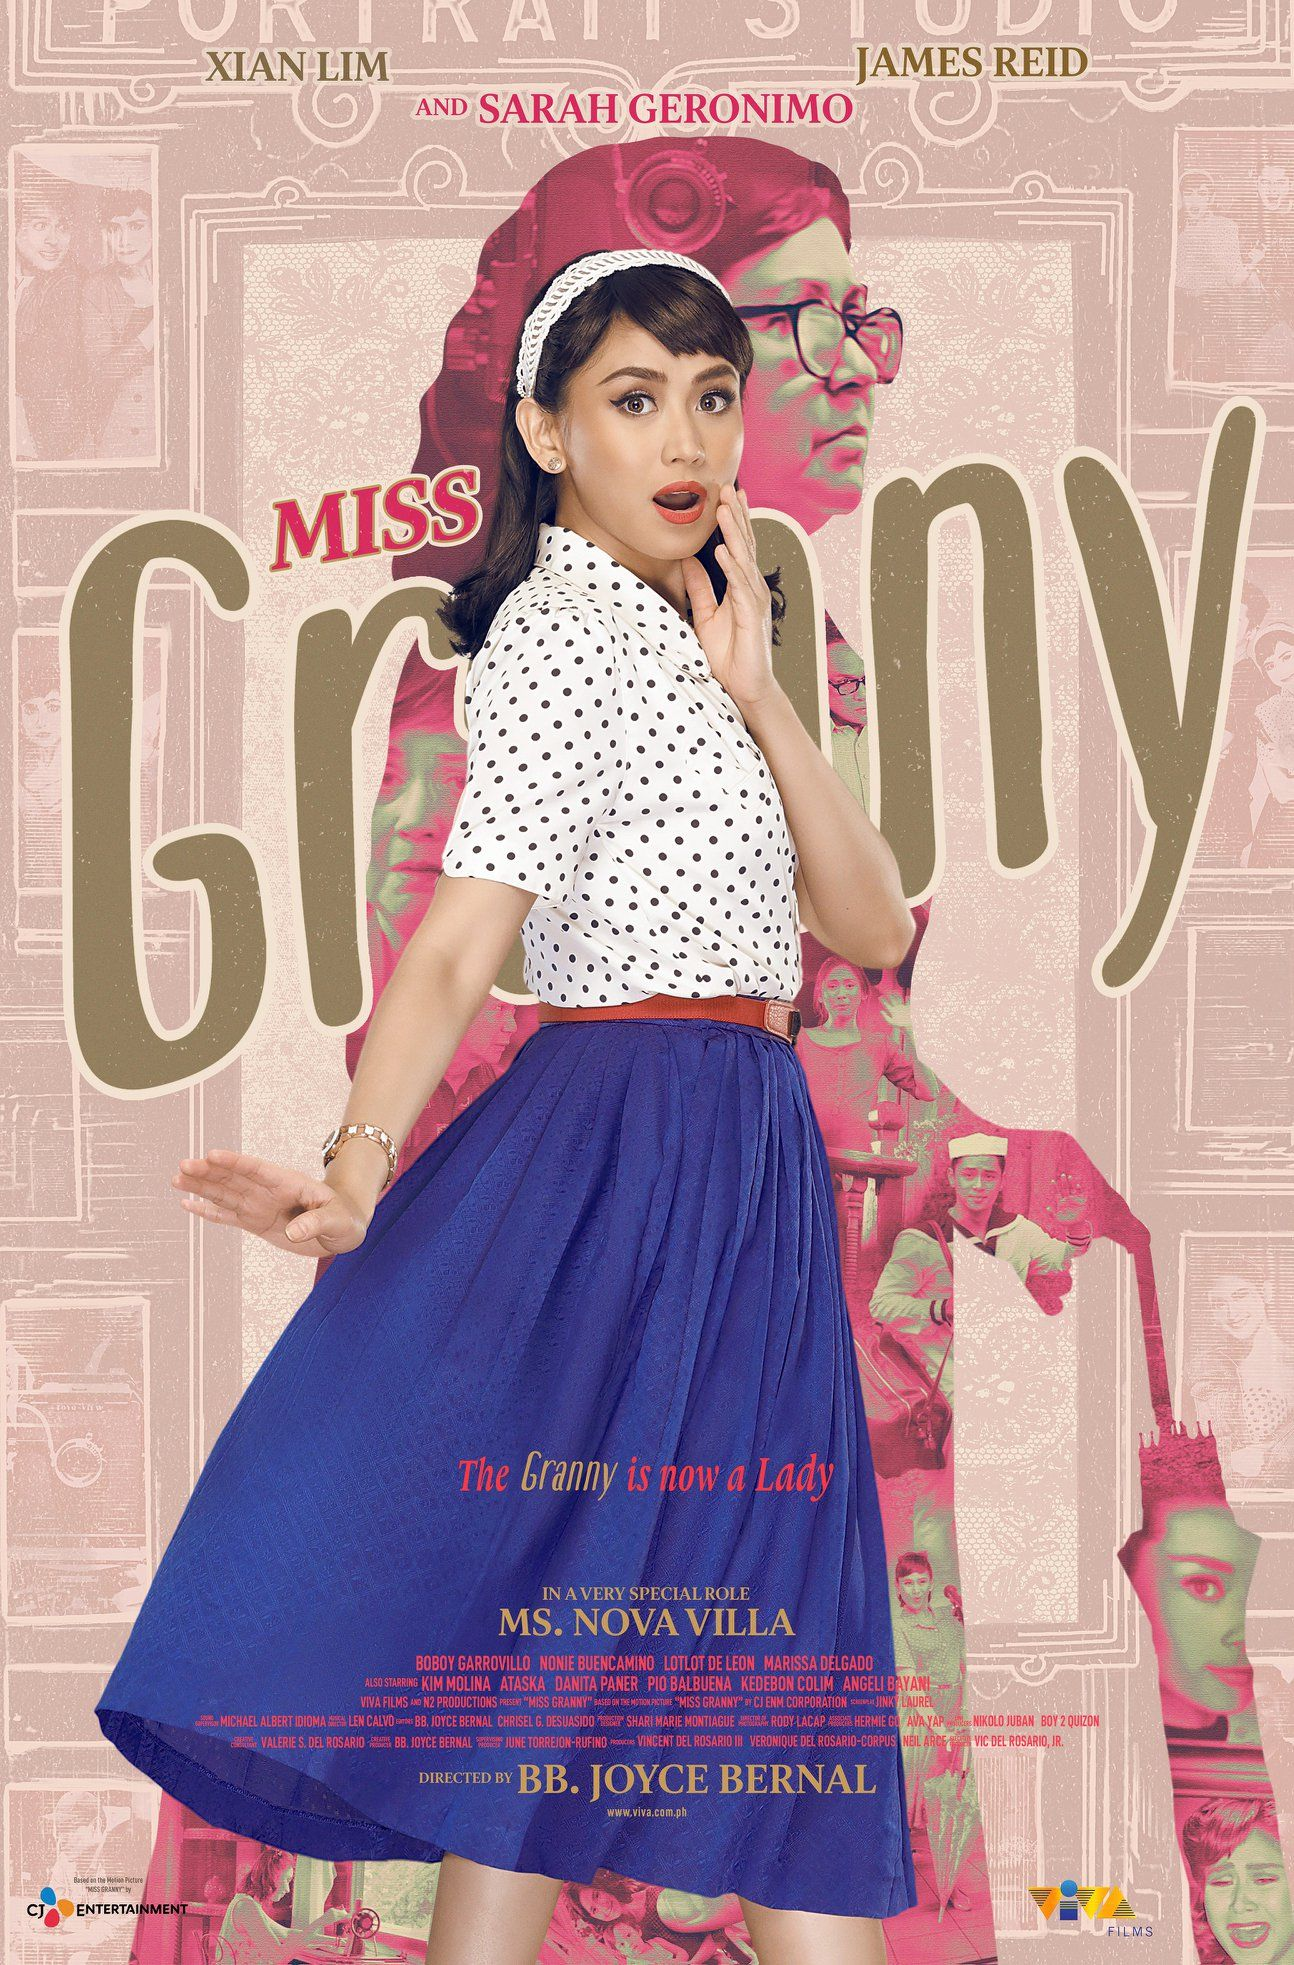 Oh Remake Miss Granny Pinoy Movies Granny Movies